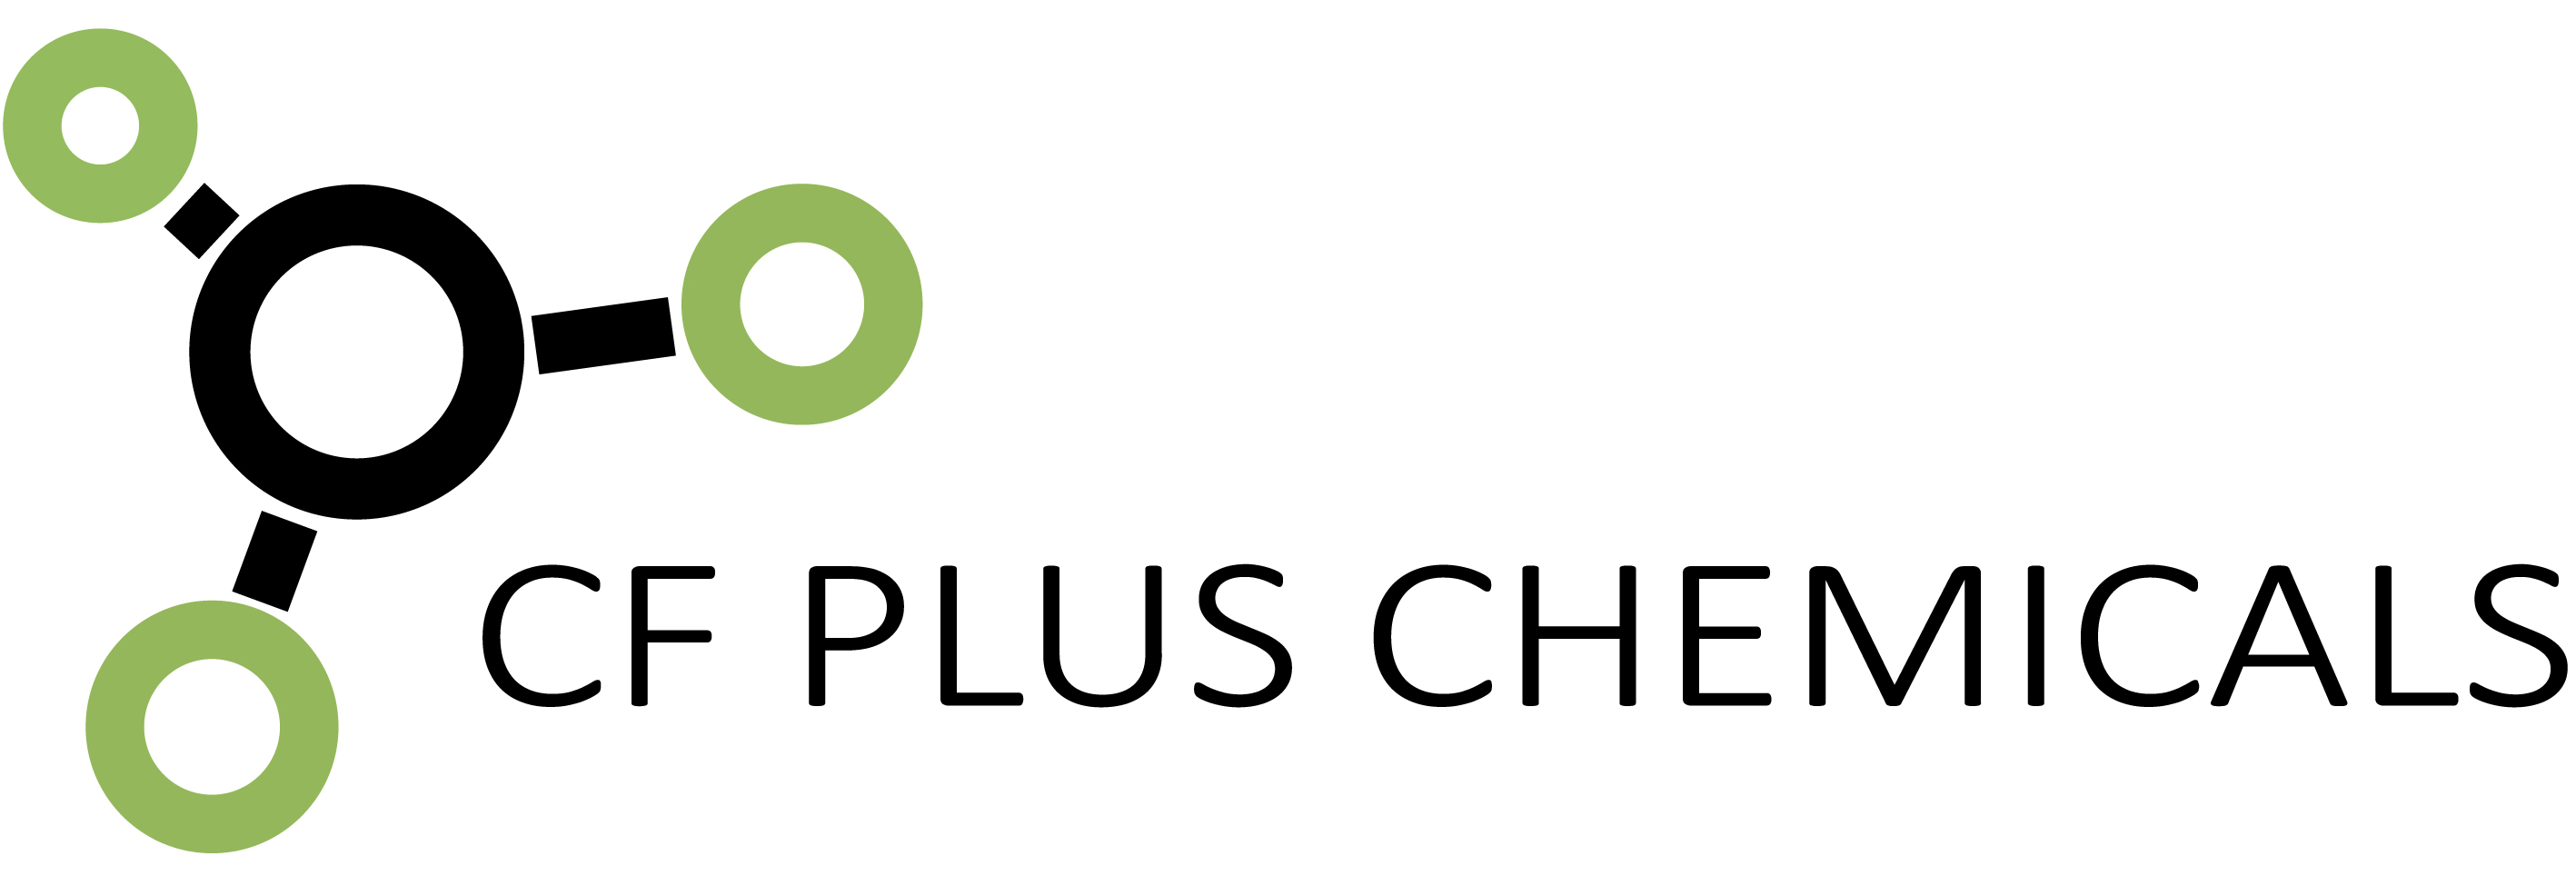 CF Plus Chemicals s.r.o.